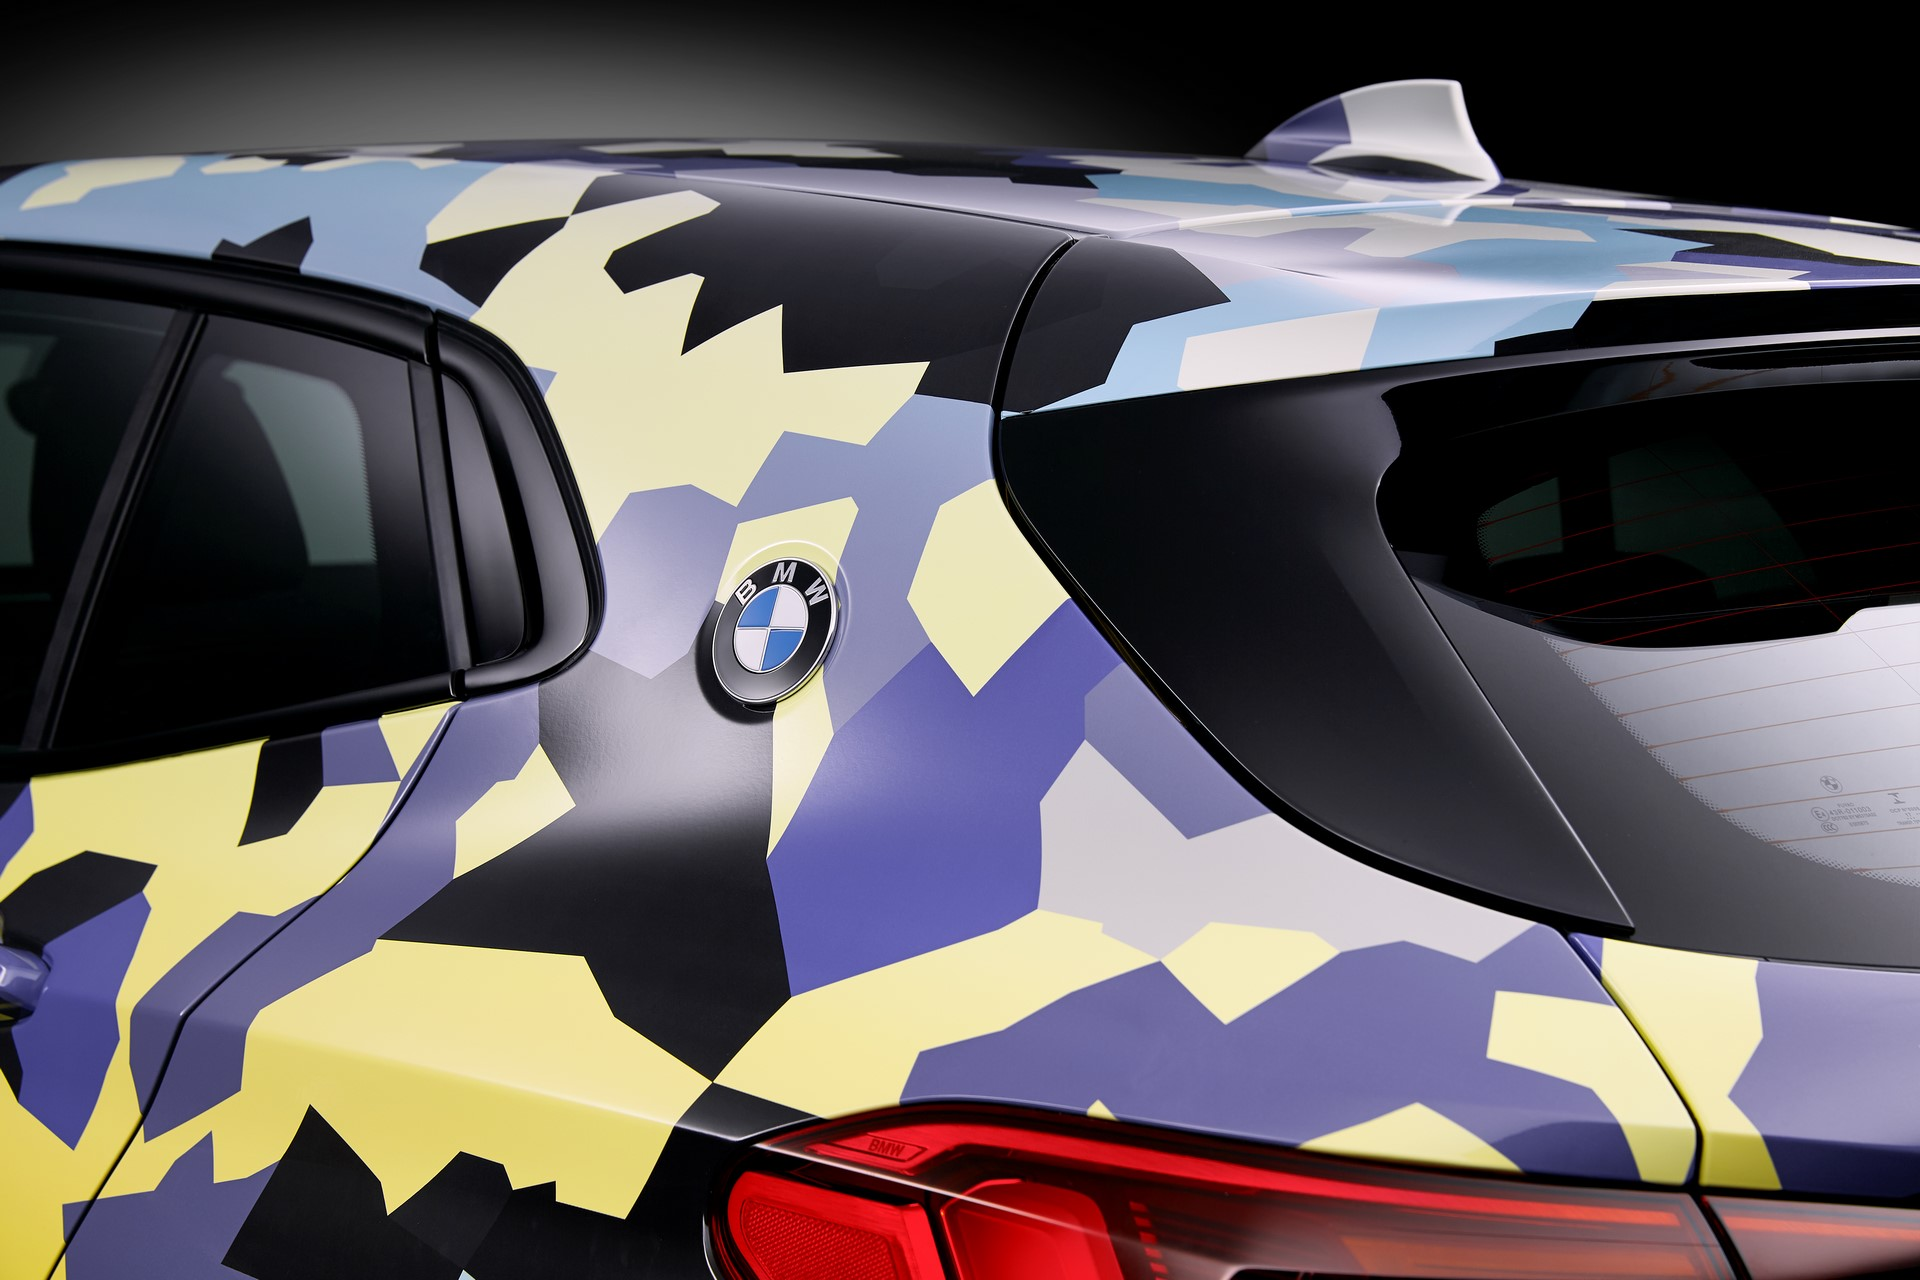 BMW X2 Digital Camo (9)